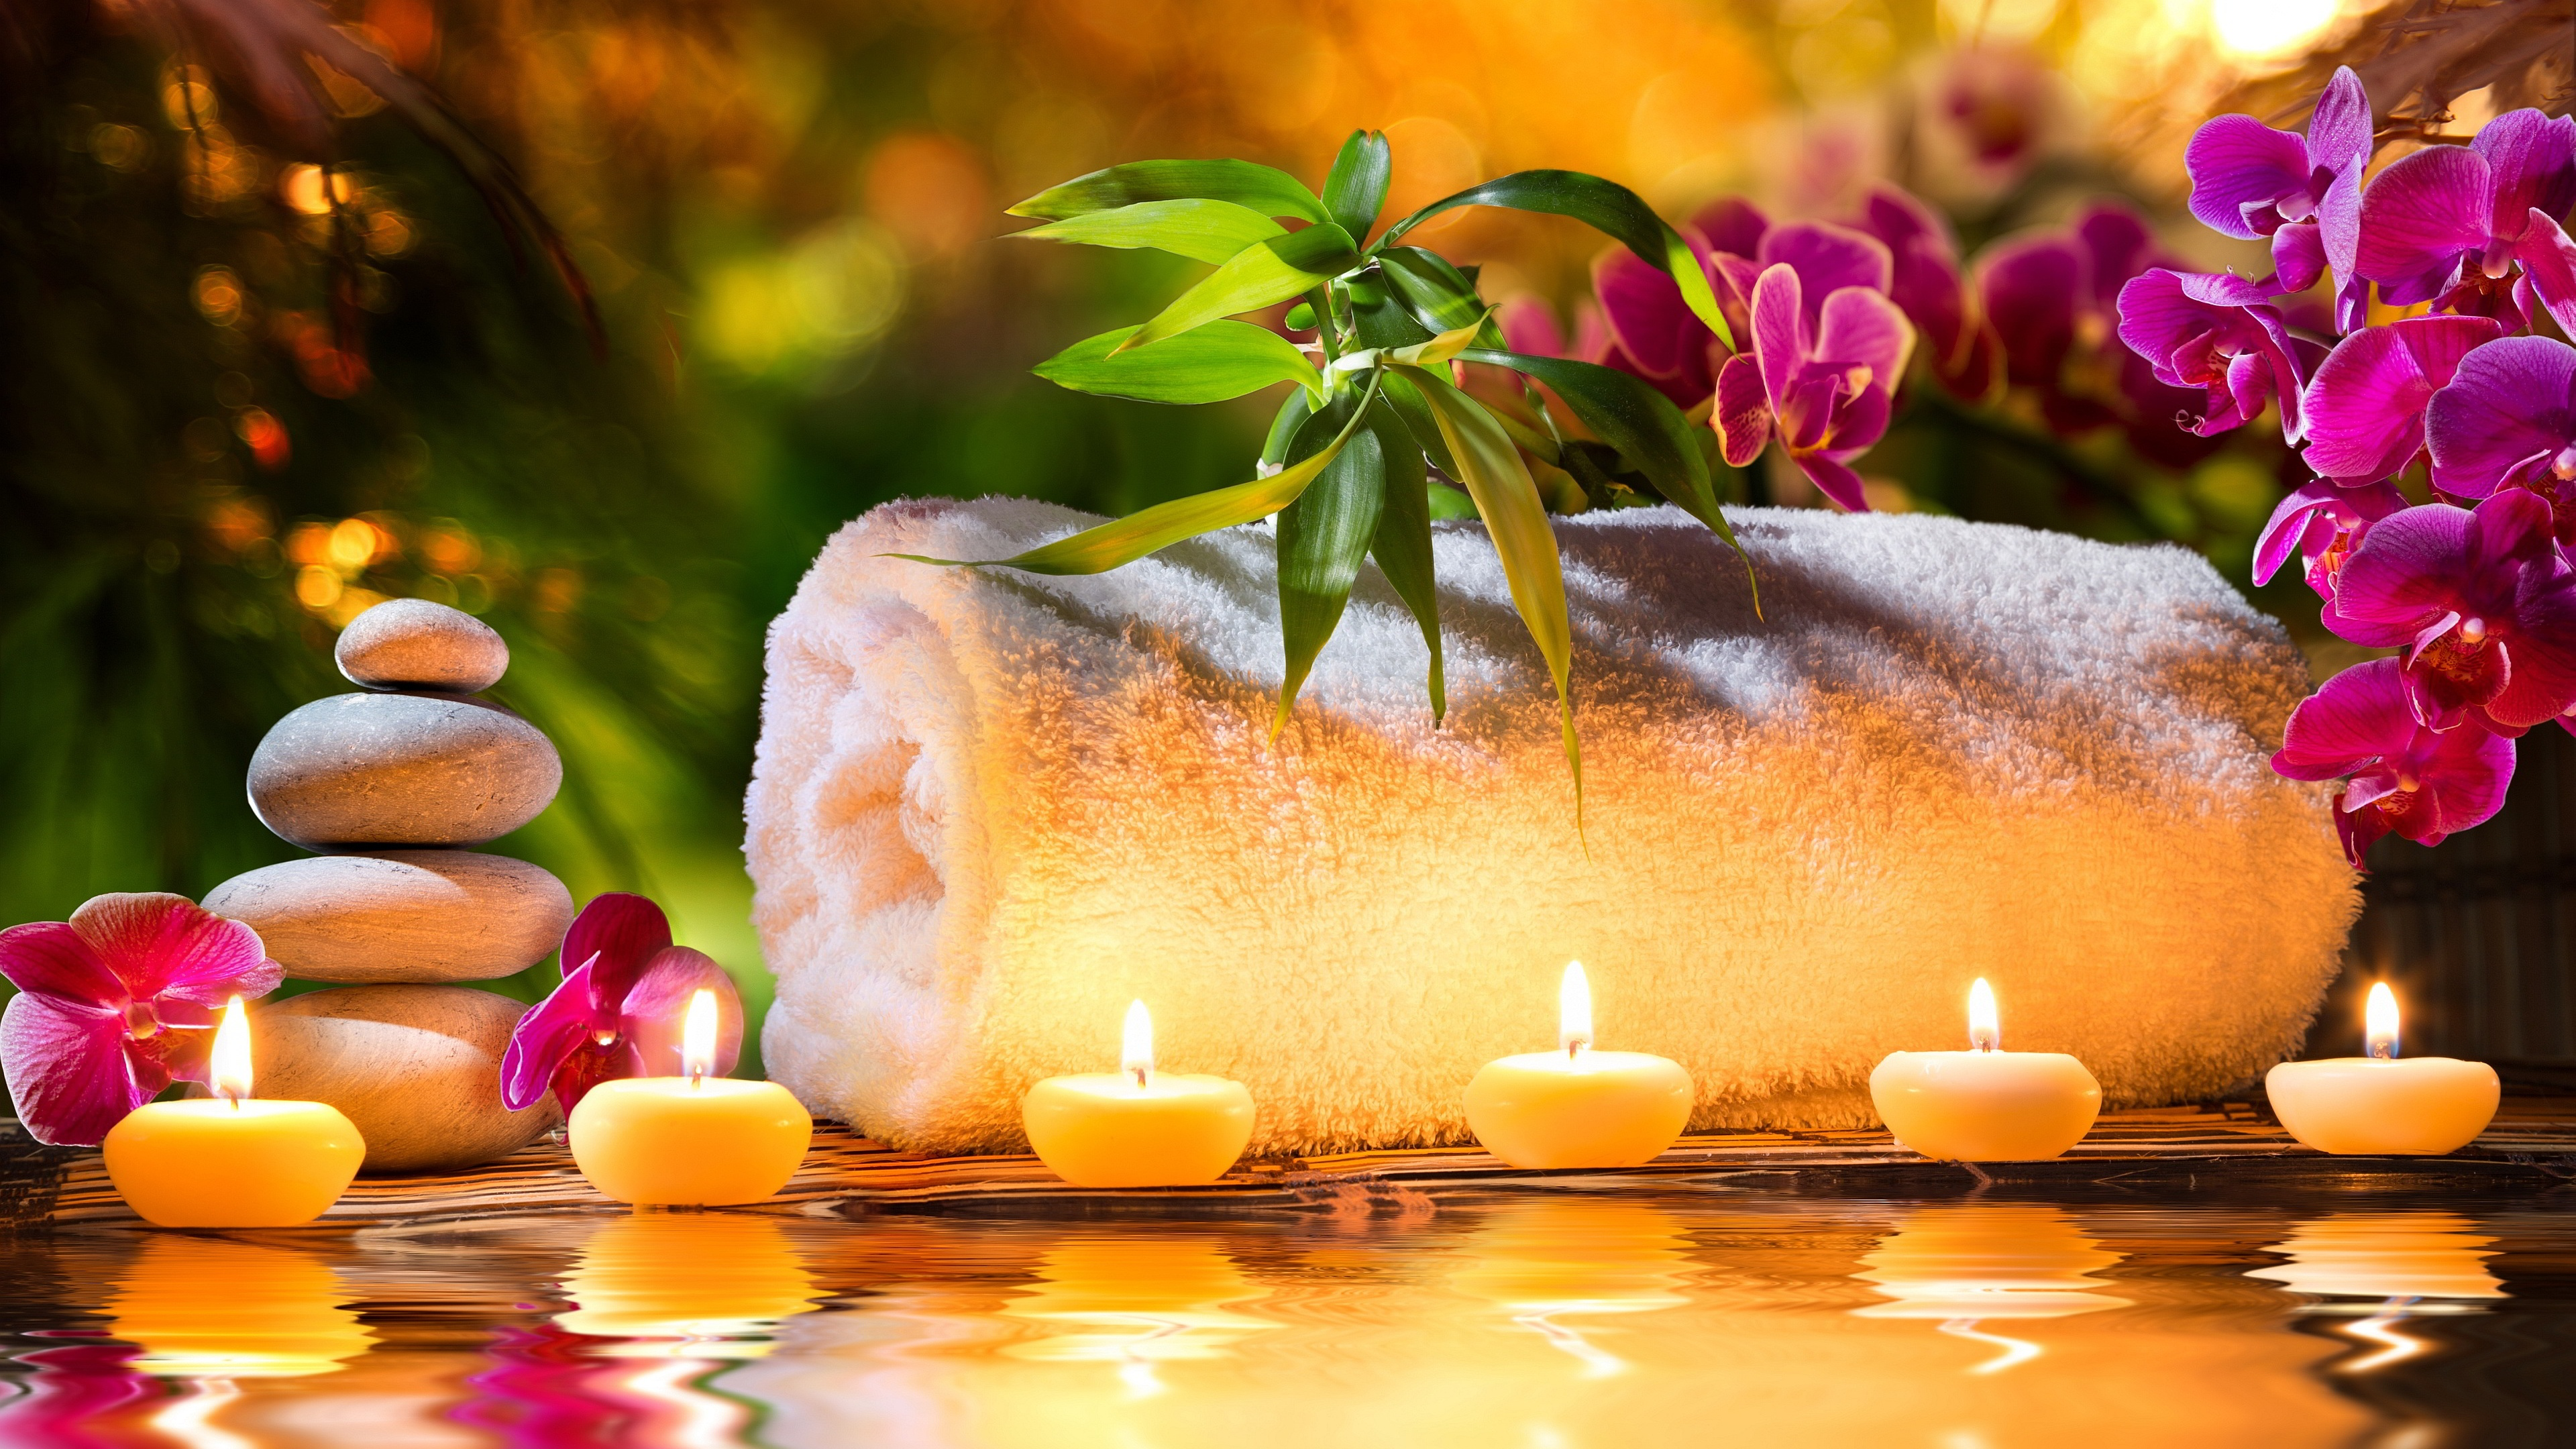 spa-stones-candles-decoration-3840x2160